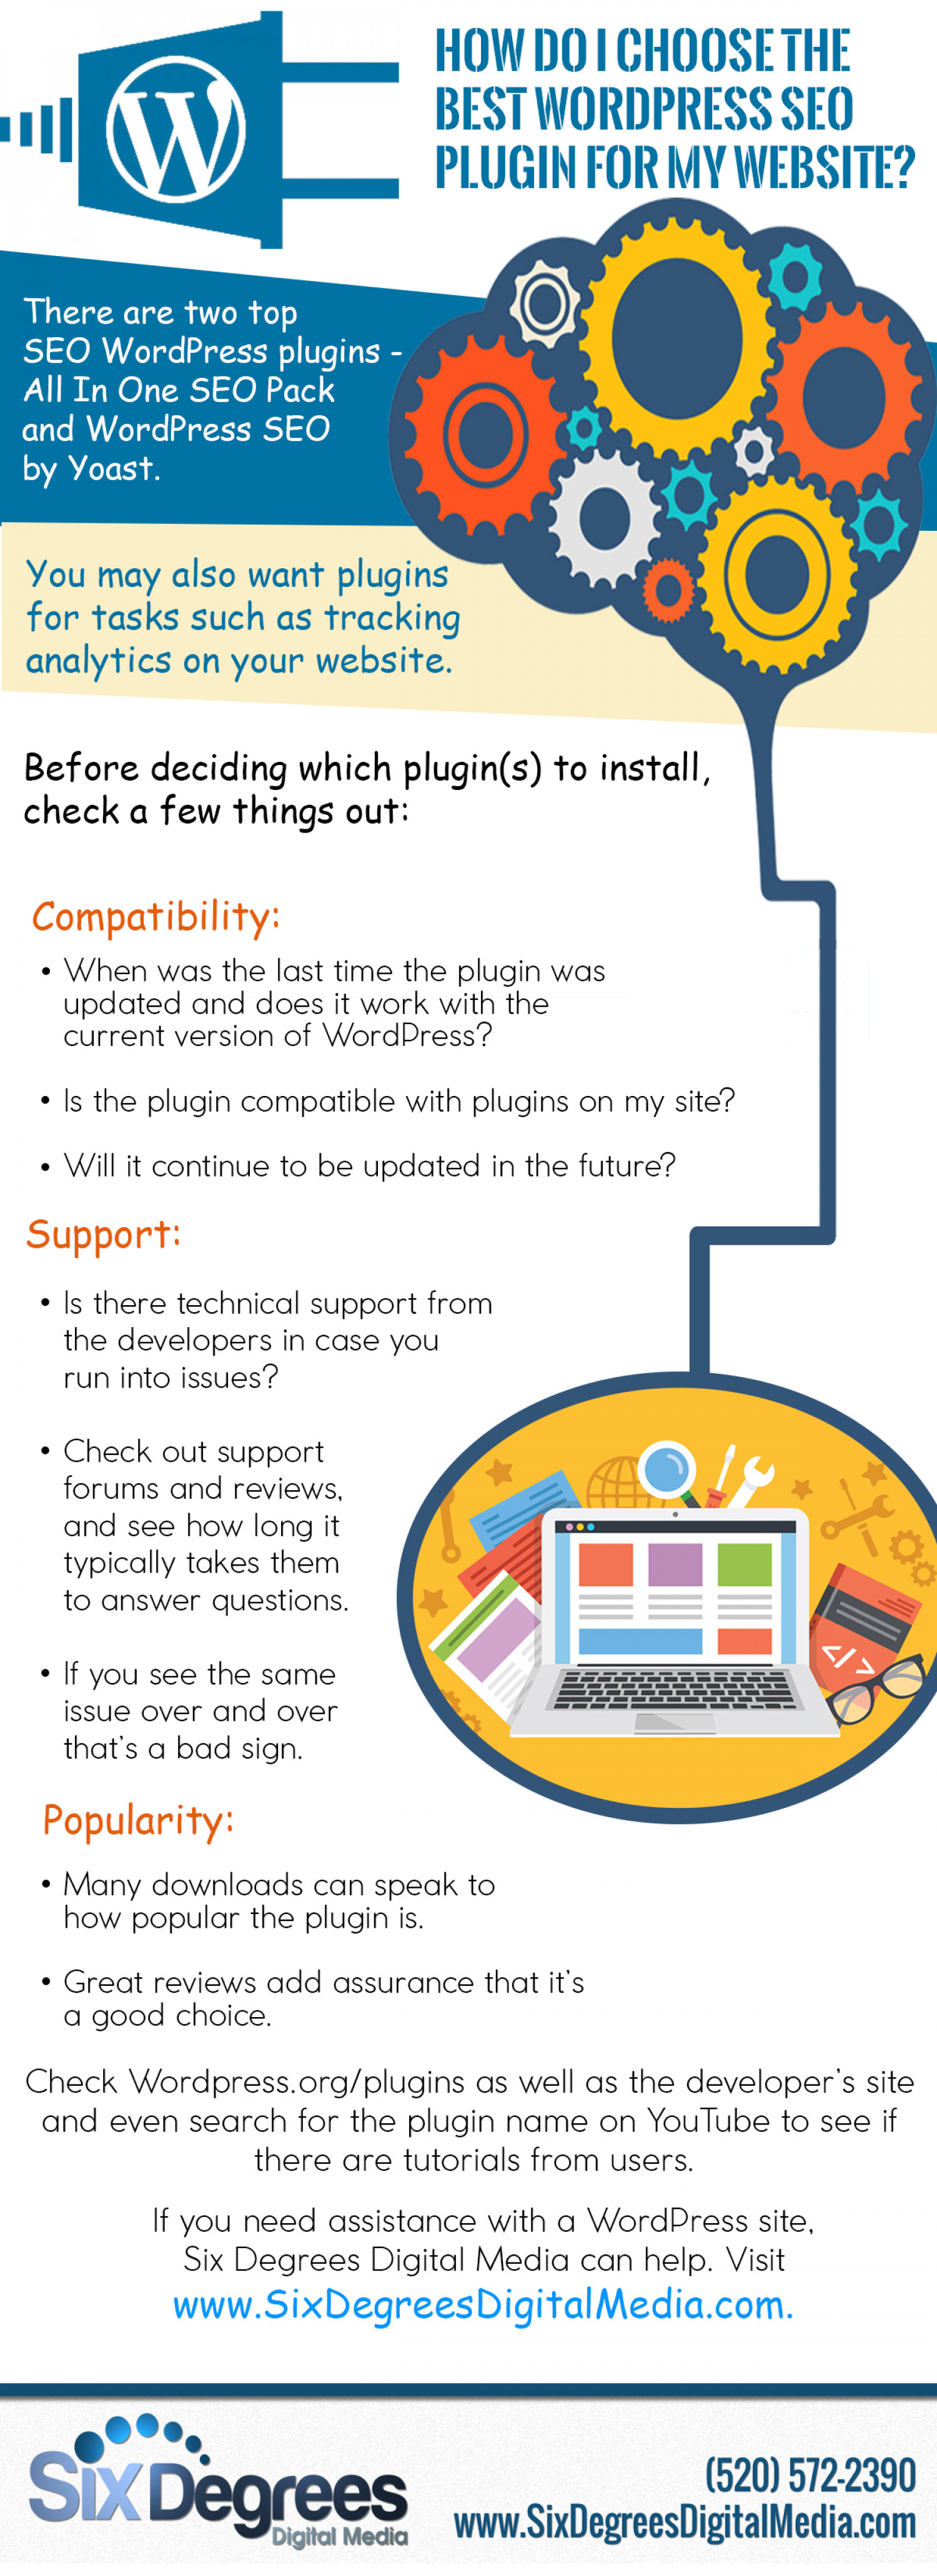 How Do I Choose The Best WordPress SEO Plugin For My Website? Infographic